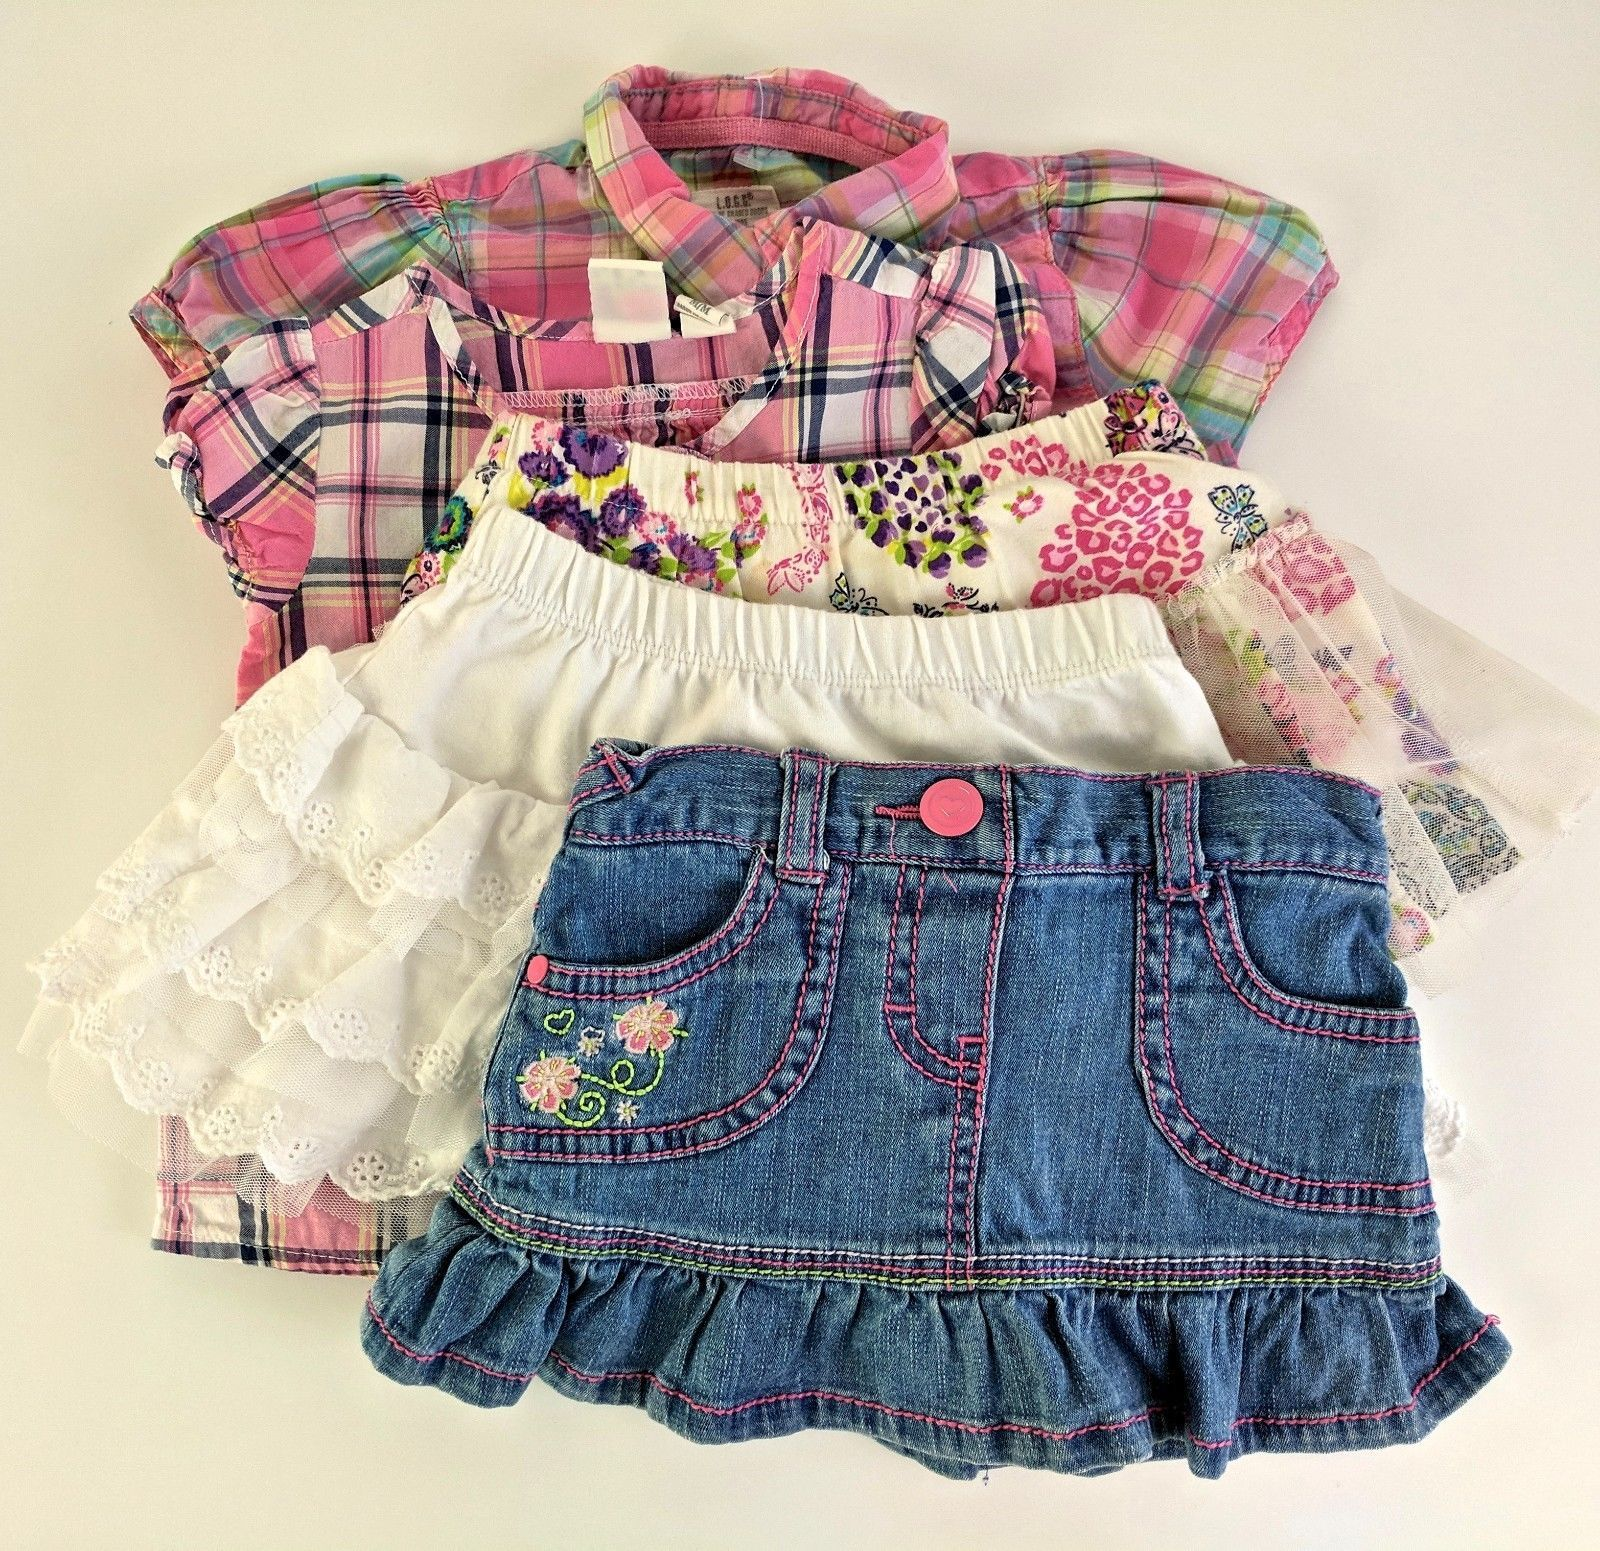 9fbf0aec501c 5 Baby Girl's Clothes Lot 6 - 24 mos. and 50 similar items. 57